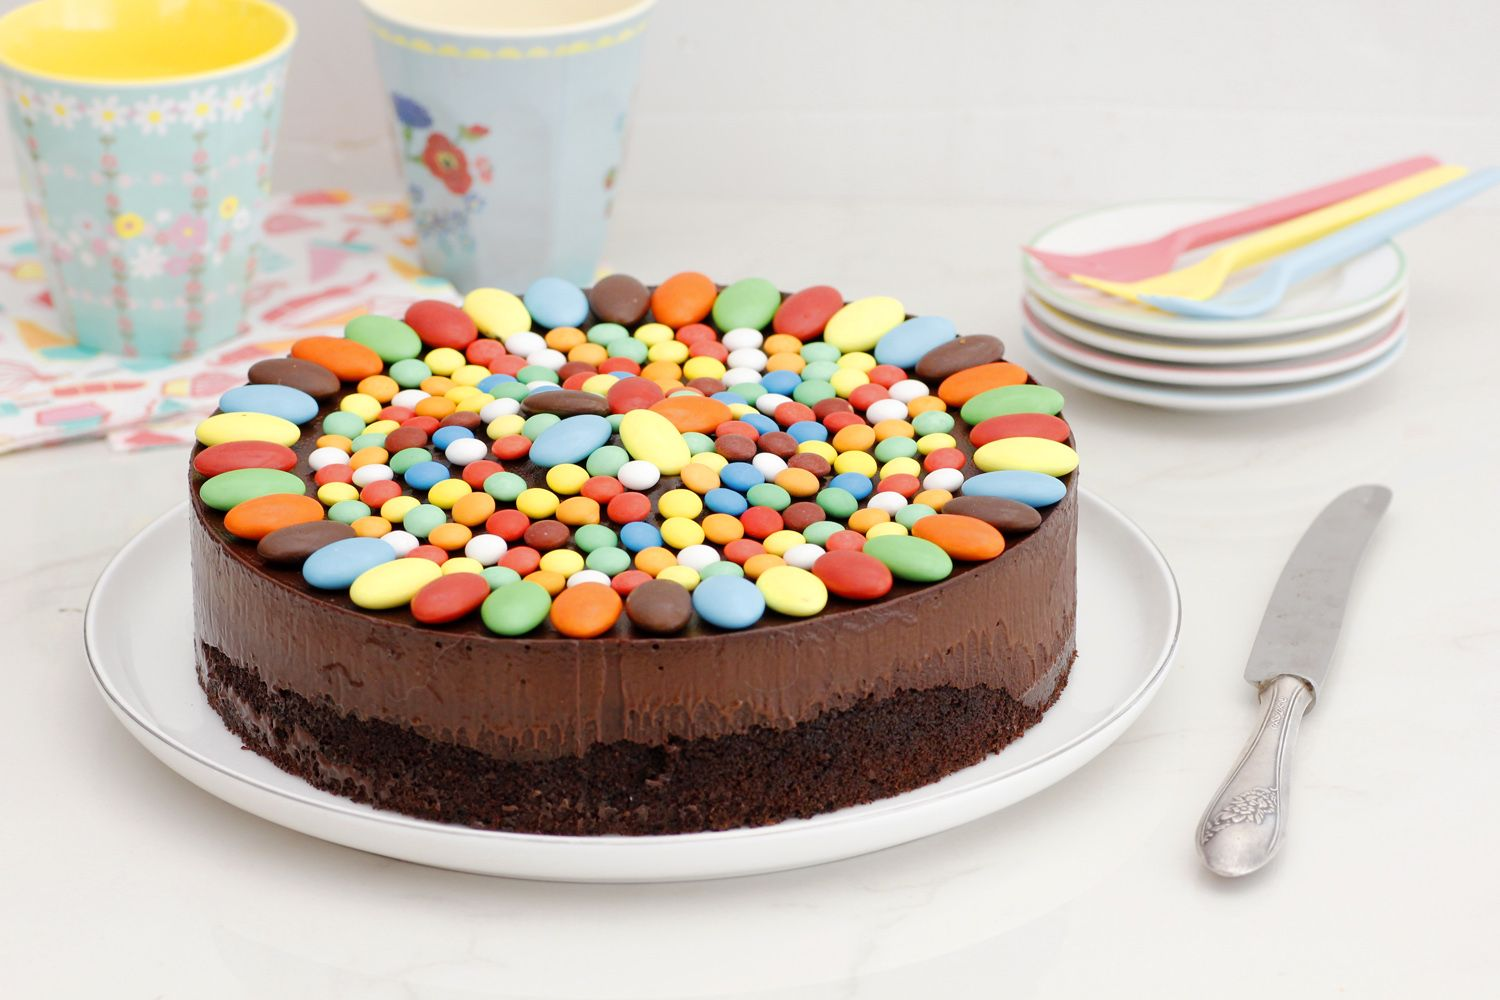 easy_chocolate_cake2-s